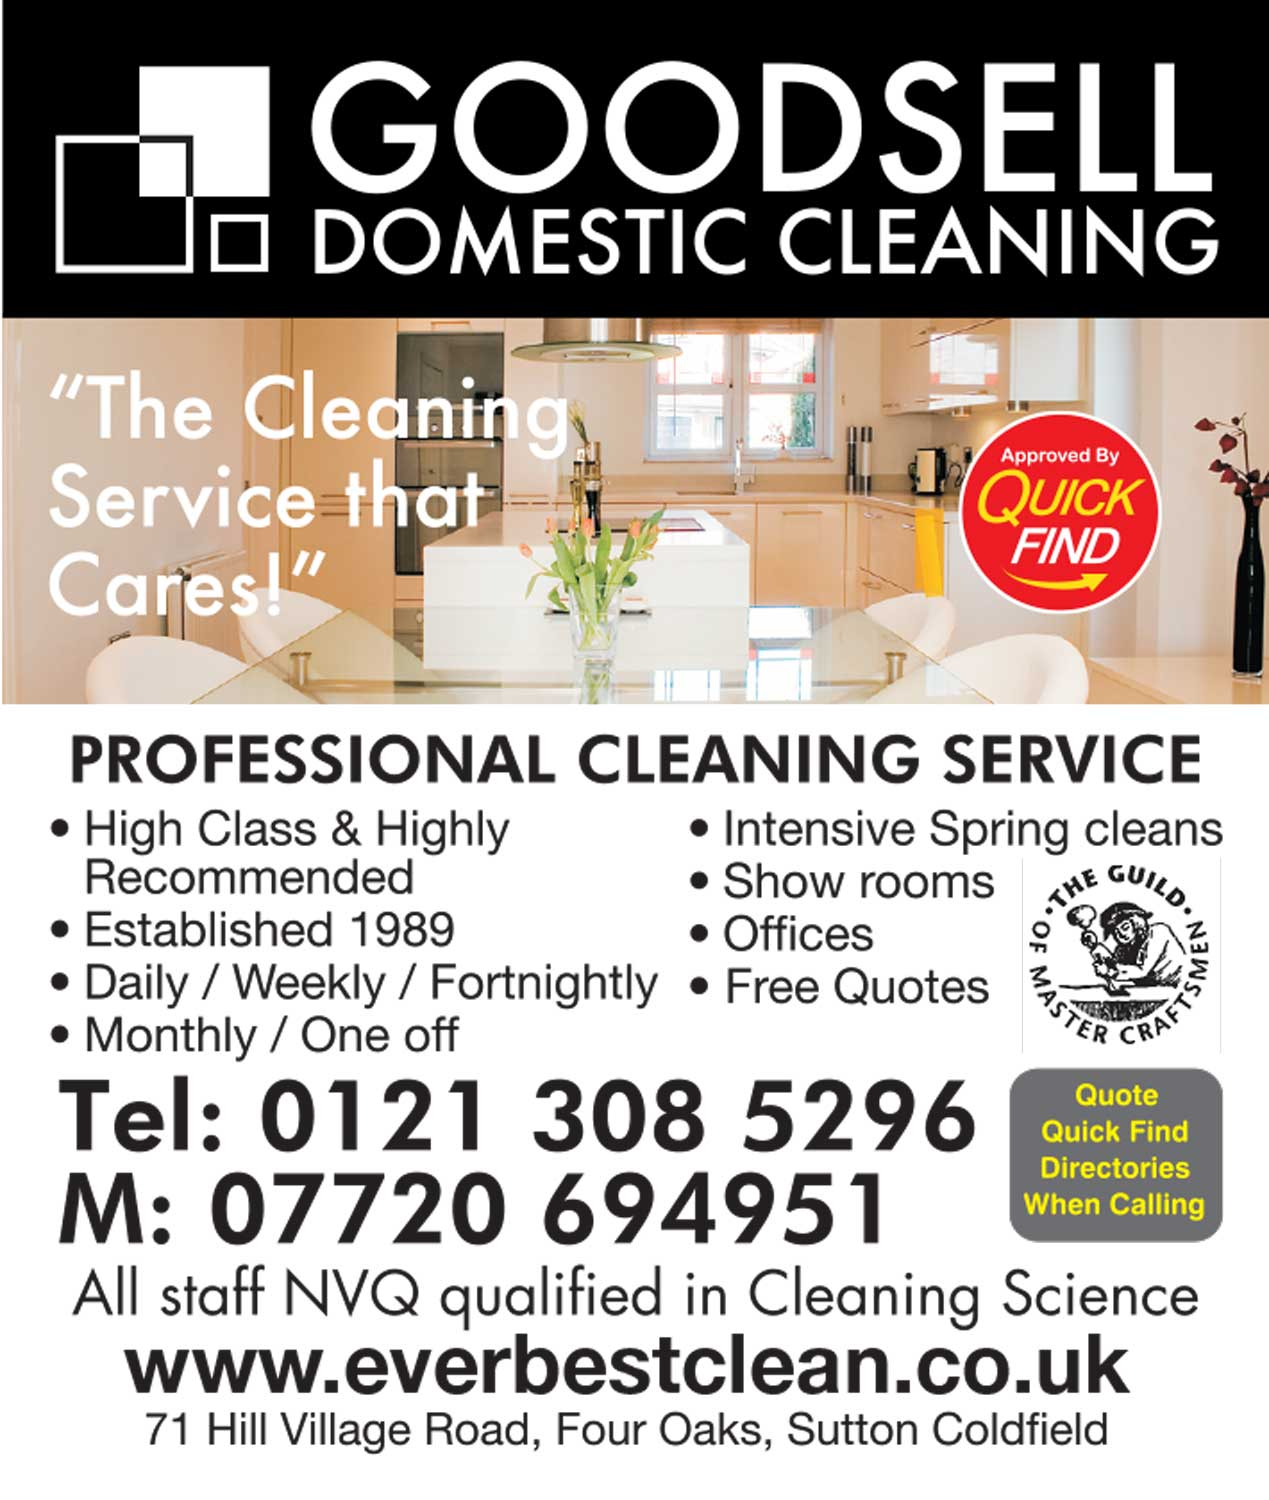 Goodsell Domestic Cleaning